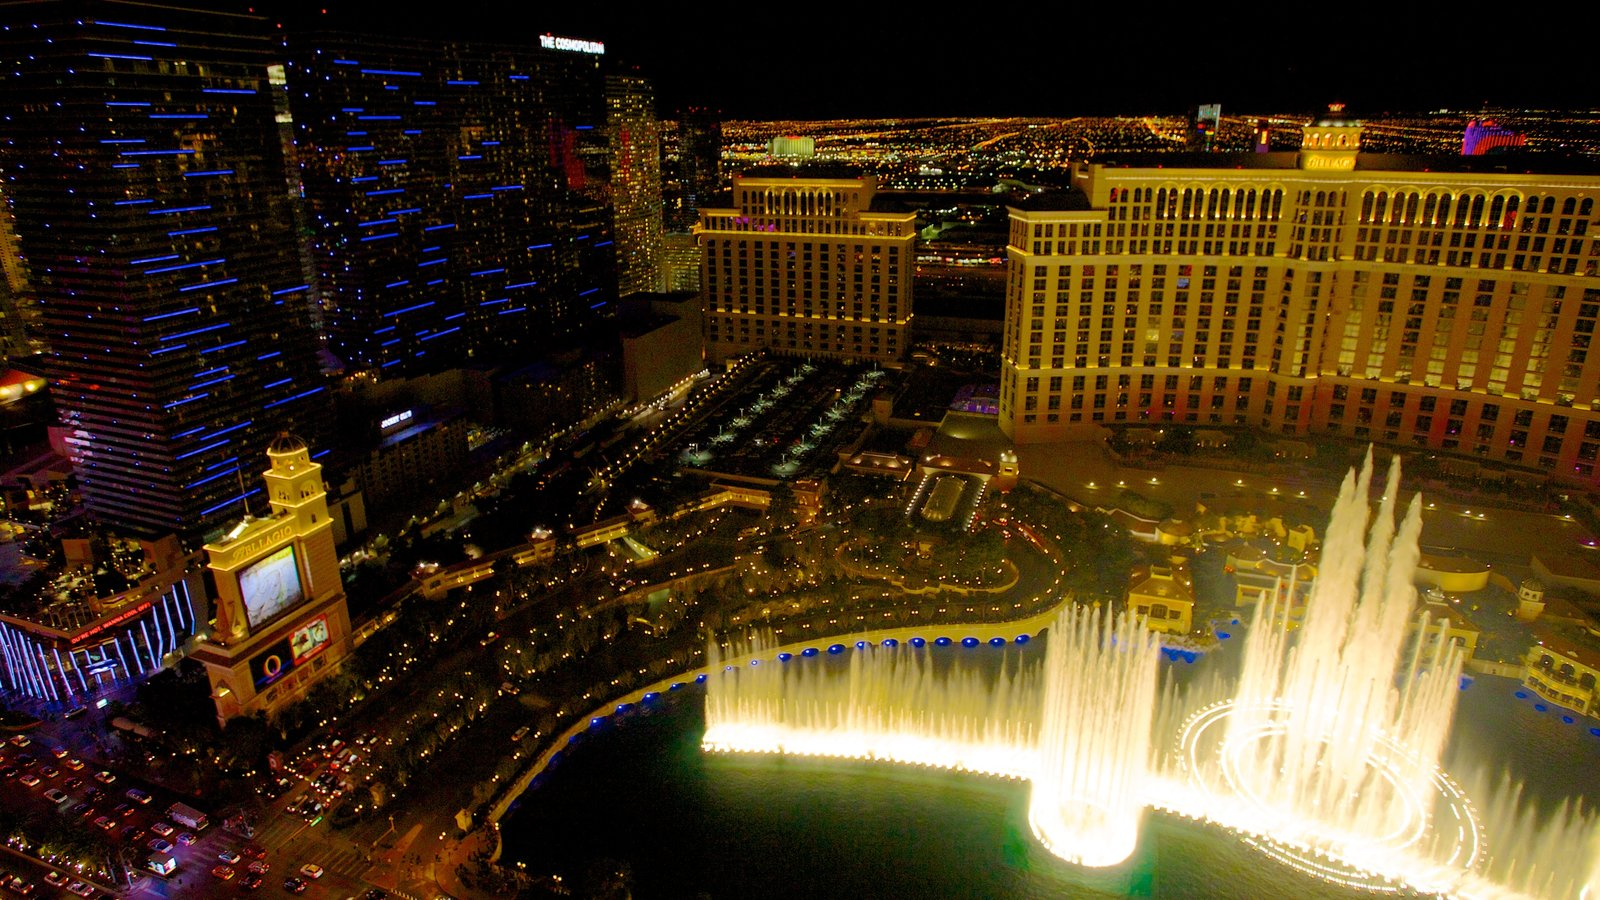 Gardens & Parks Pictures: View Images of Nevada